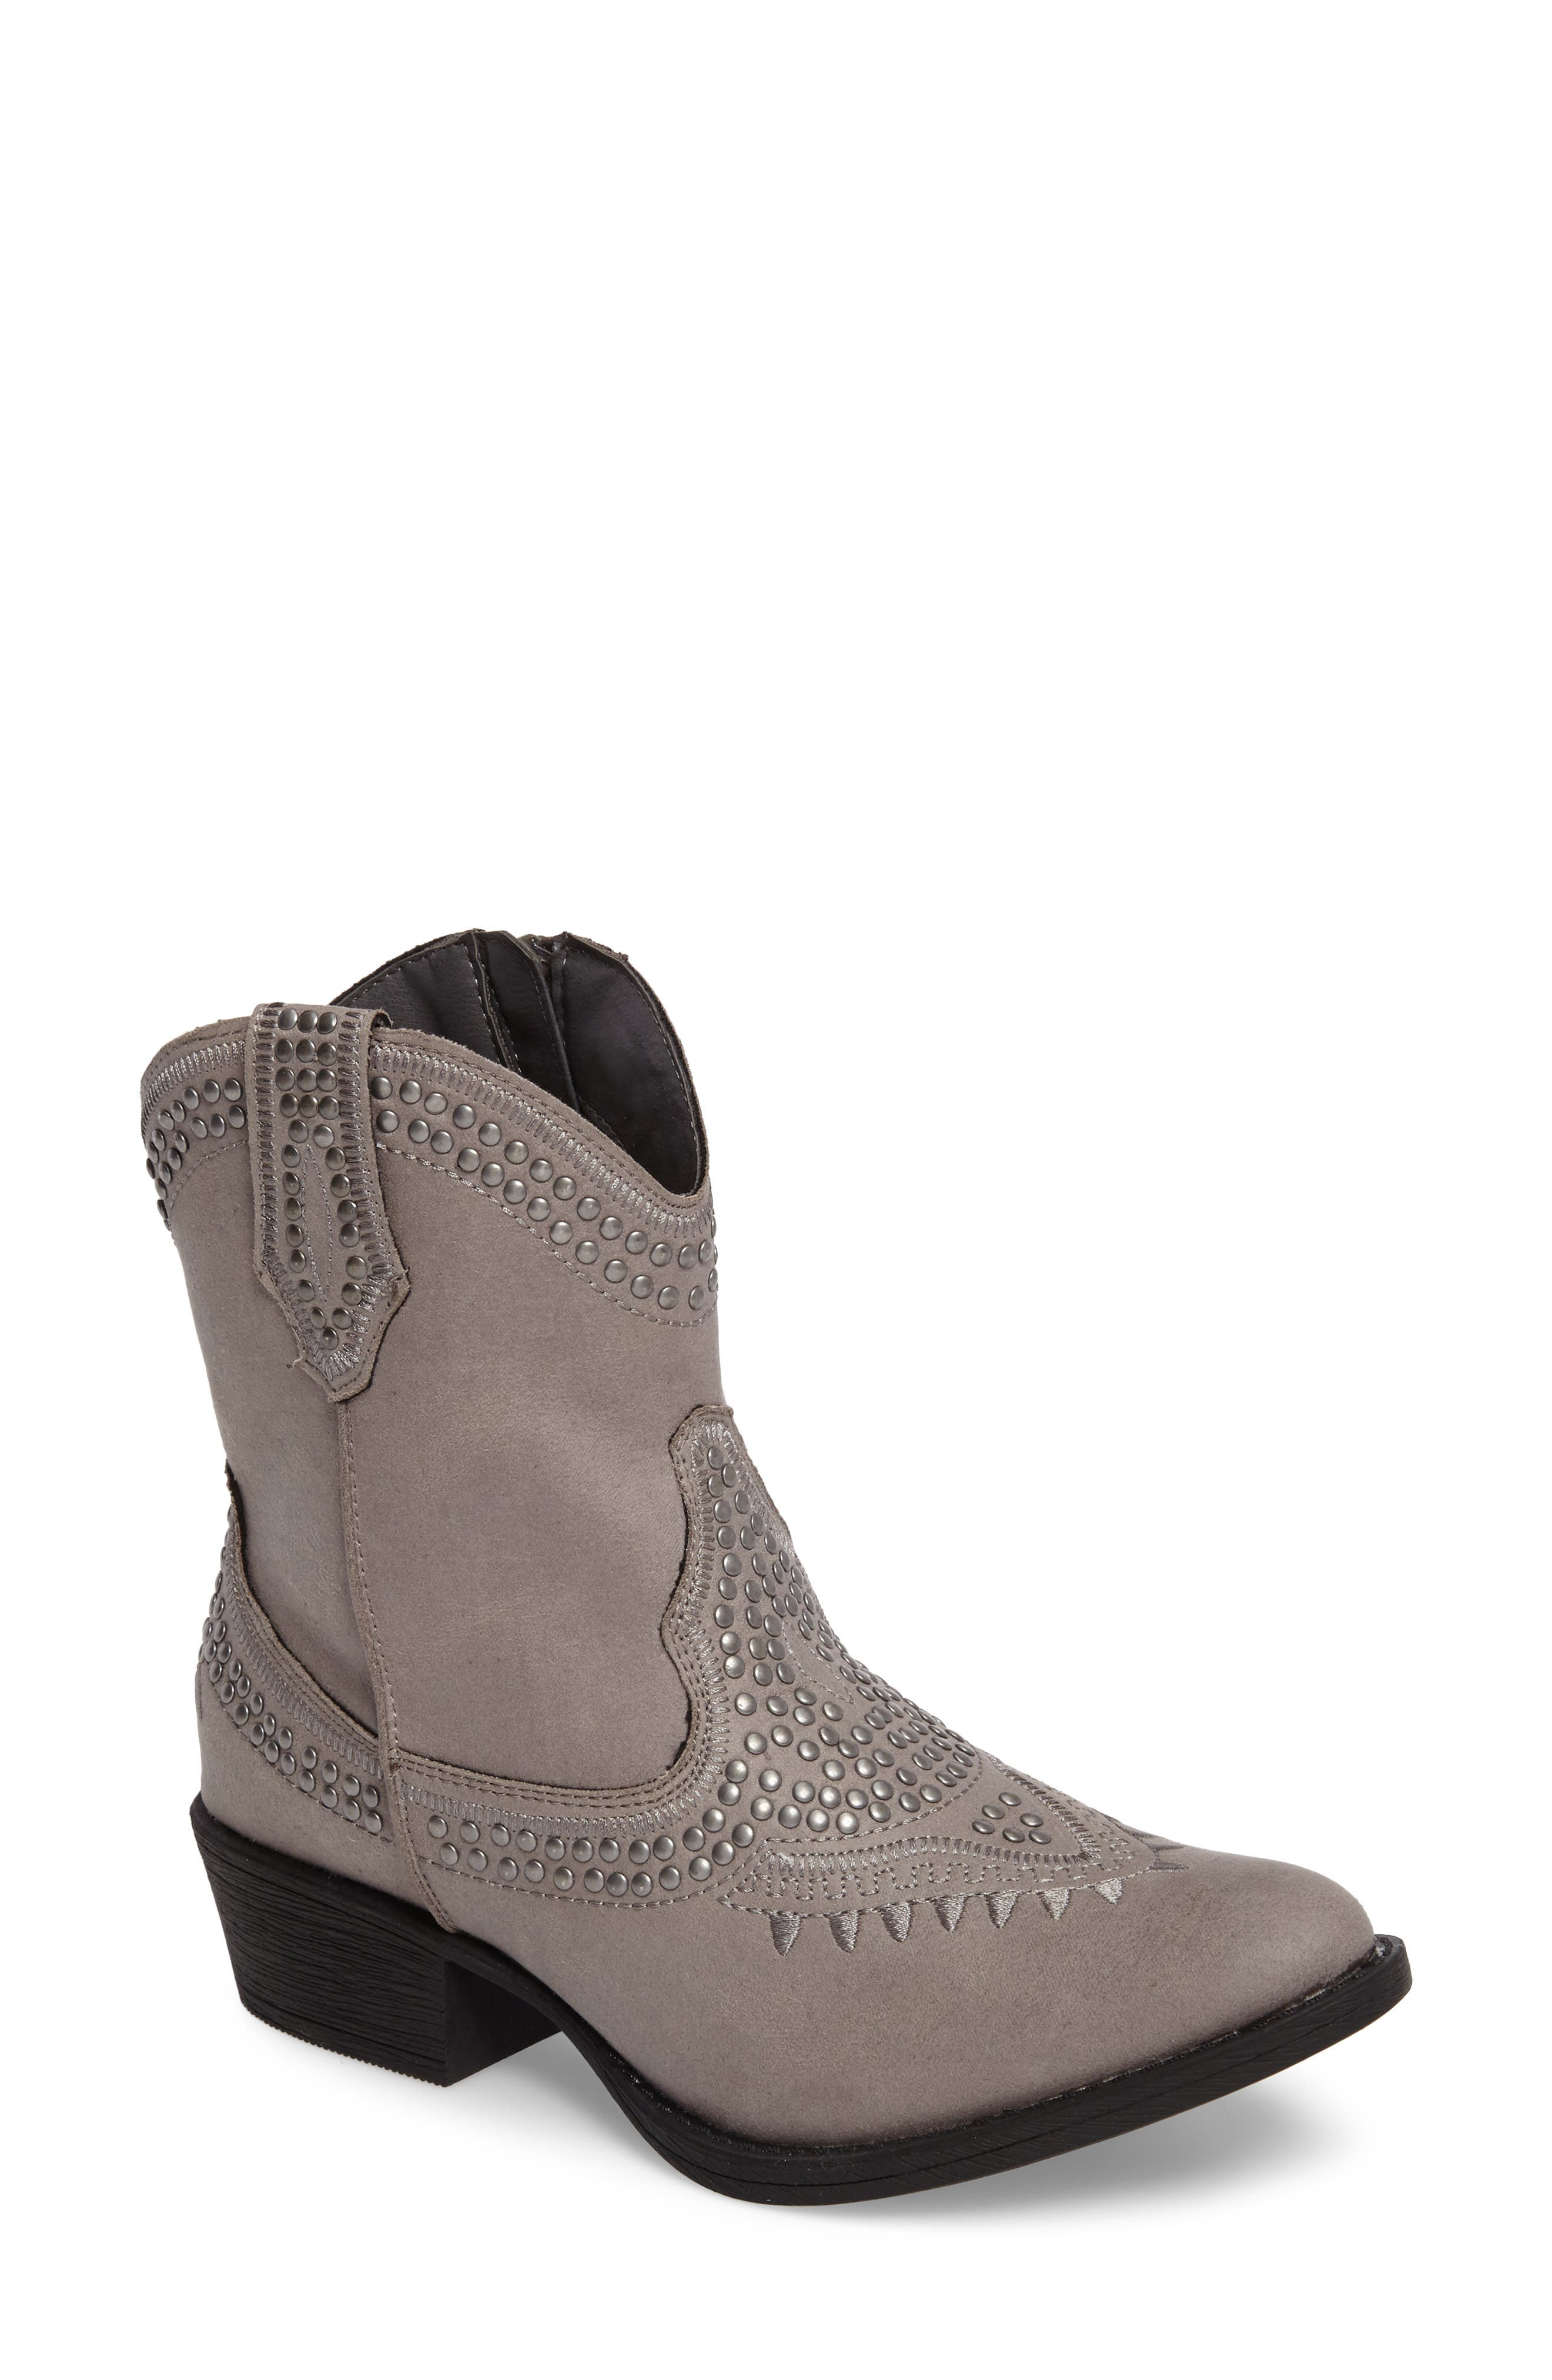 Amour Embellished Western Bootie,                             Main thumbnail 1, color,                             023